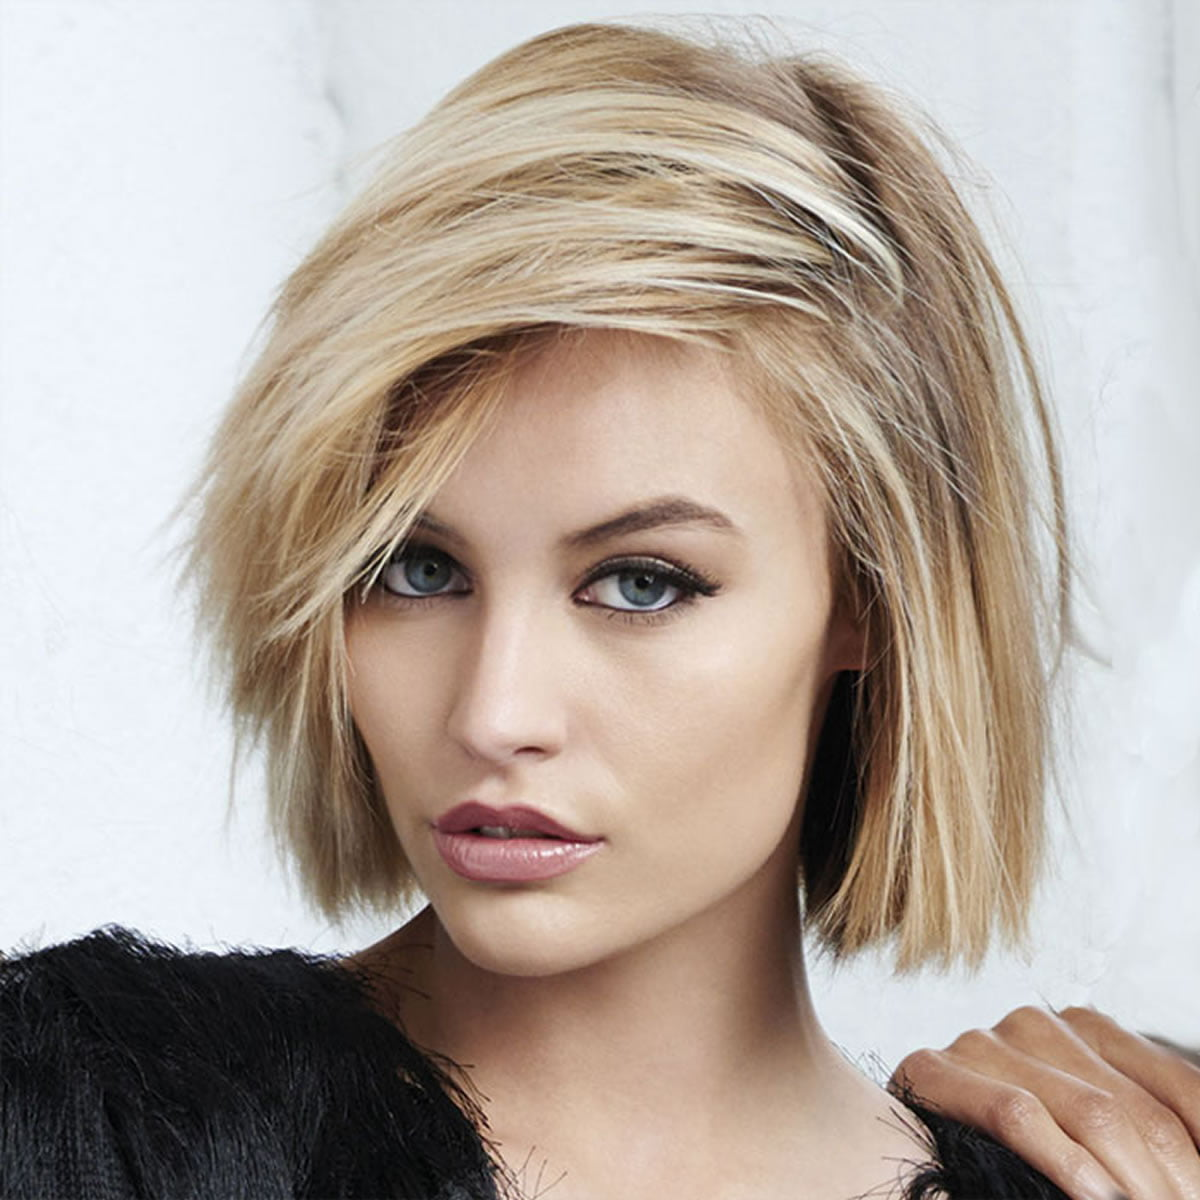 Coiffure Femme Court Tendance 2017 The Best 30 Short Bob Haircuts 2018 Short Hairstyles For